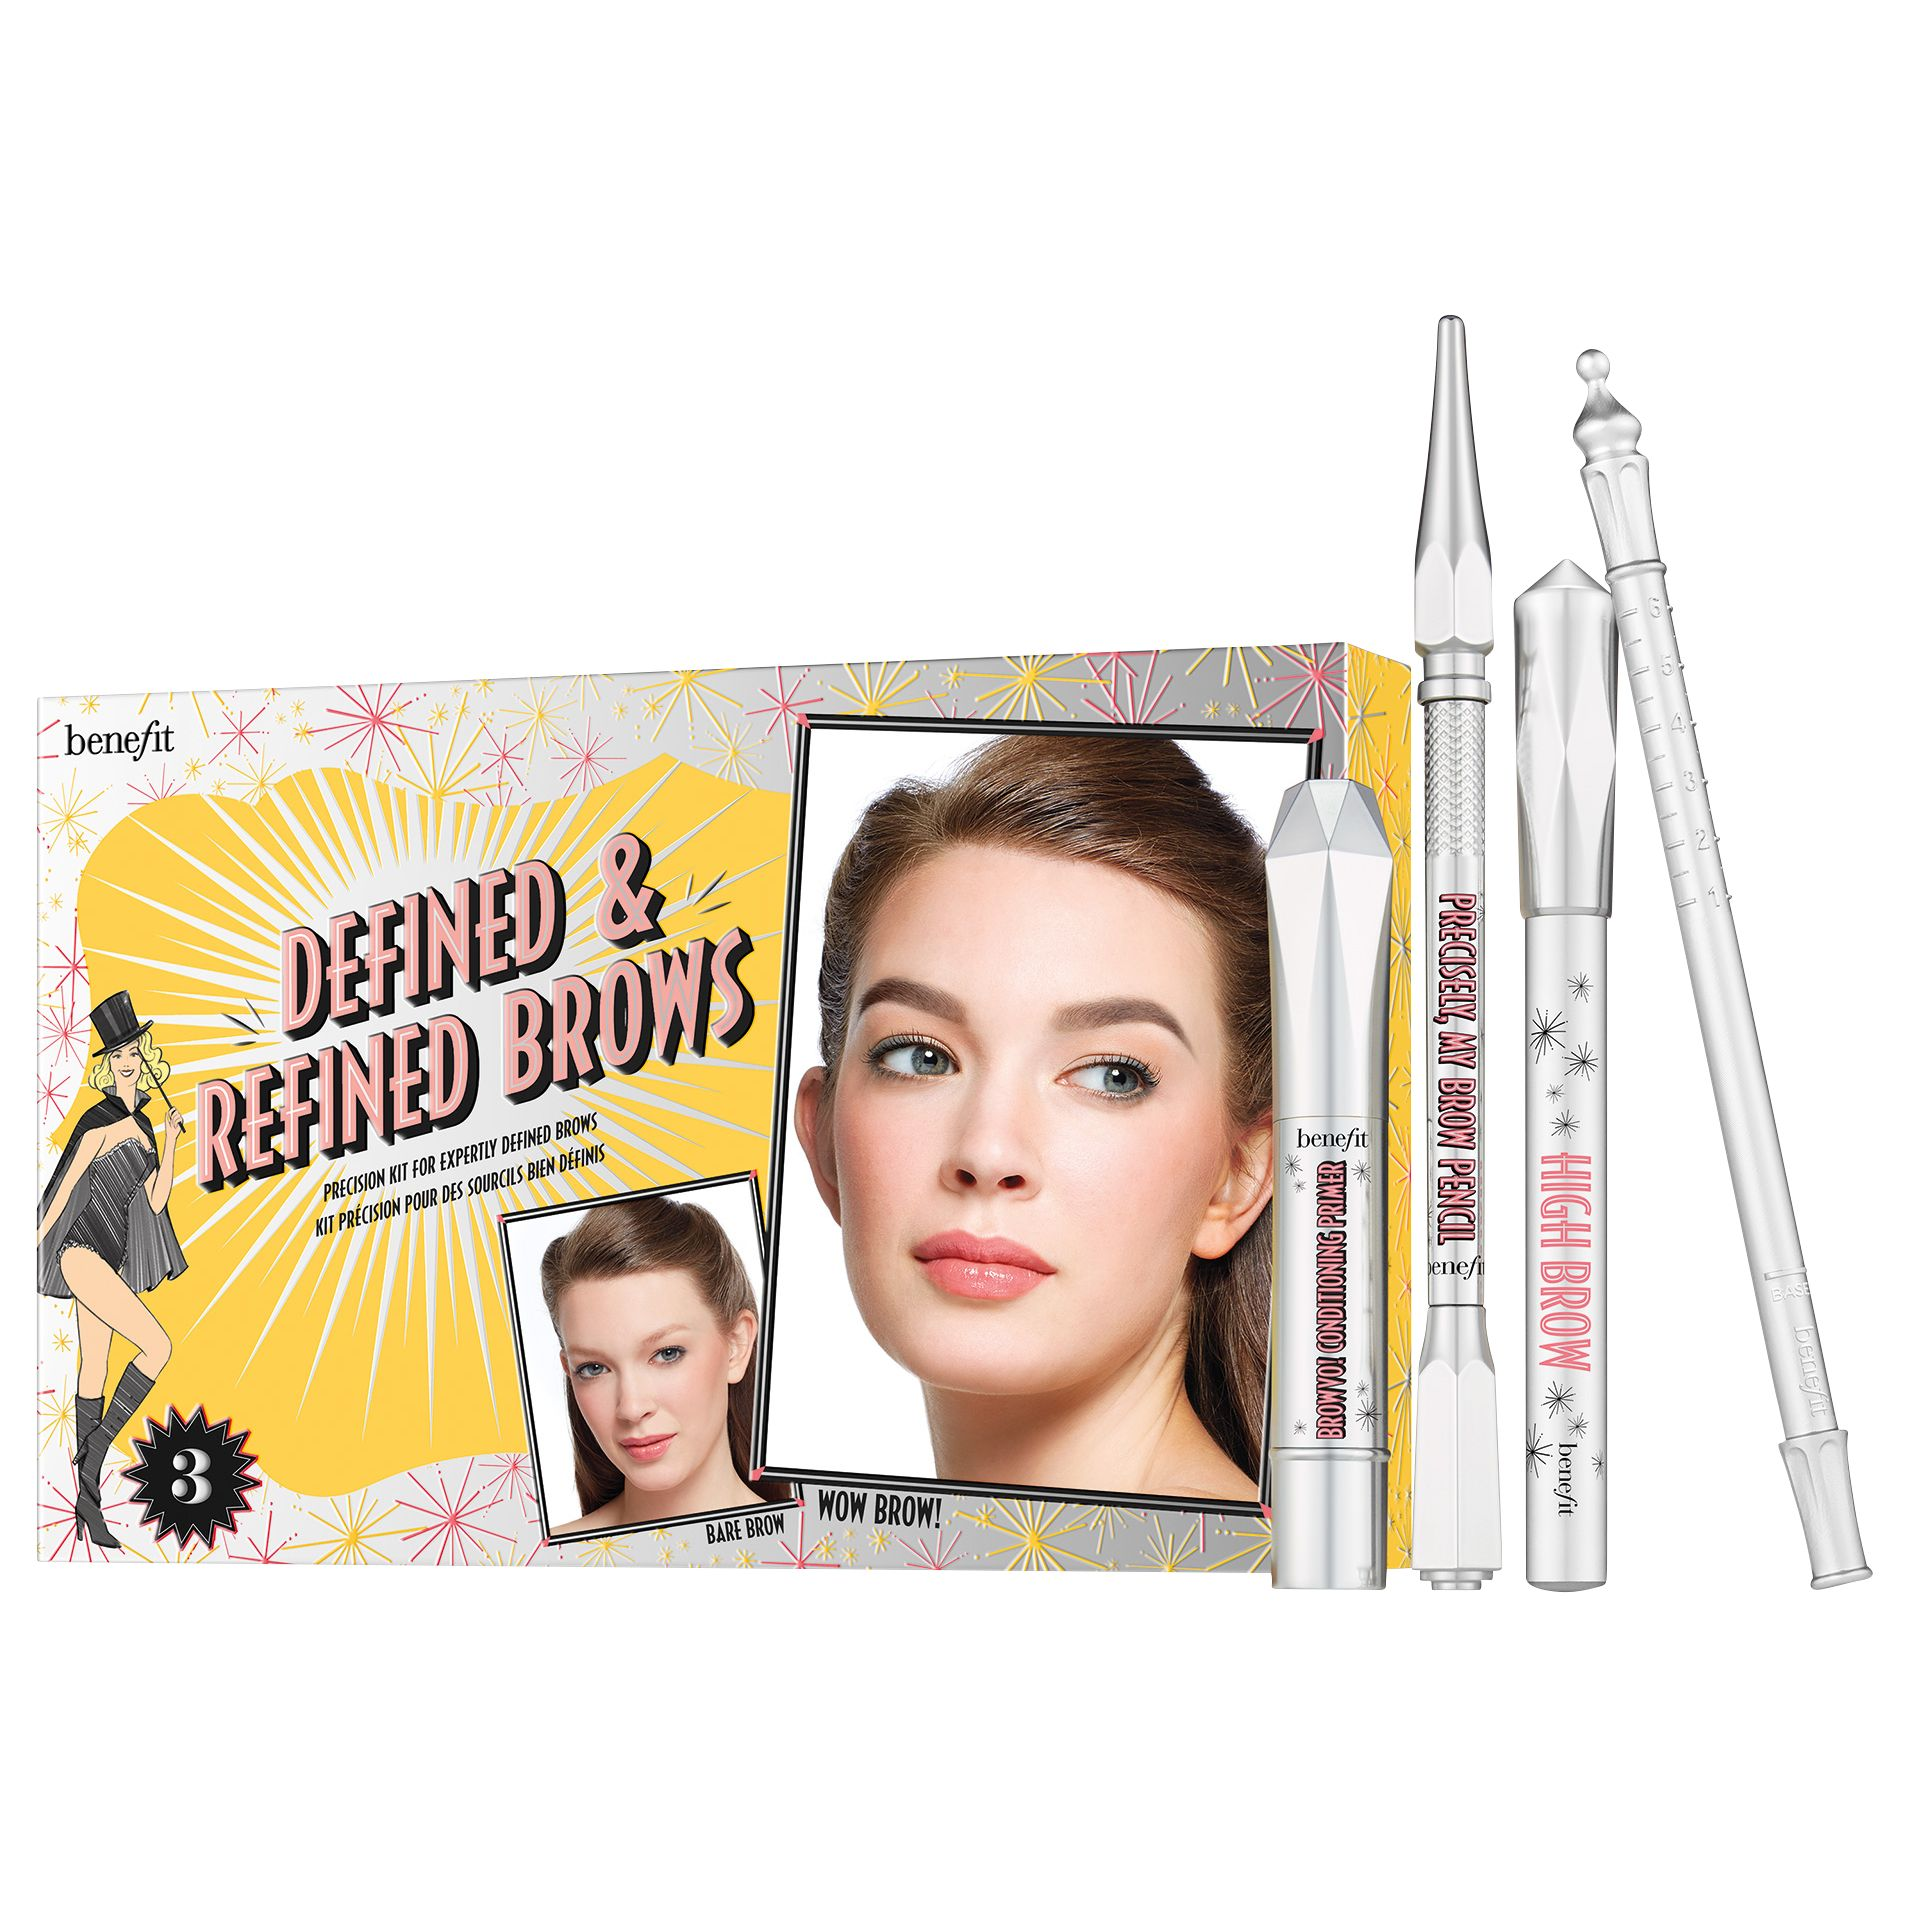 Benefit Benefit Defined & Refined Brow Kit, Medium 03